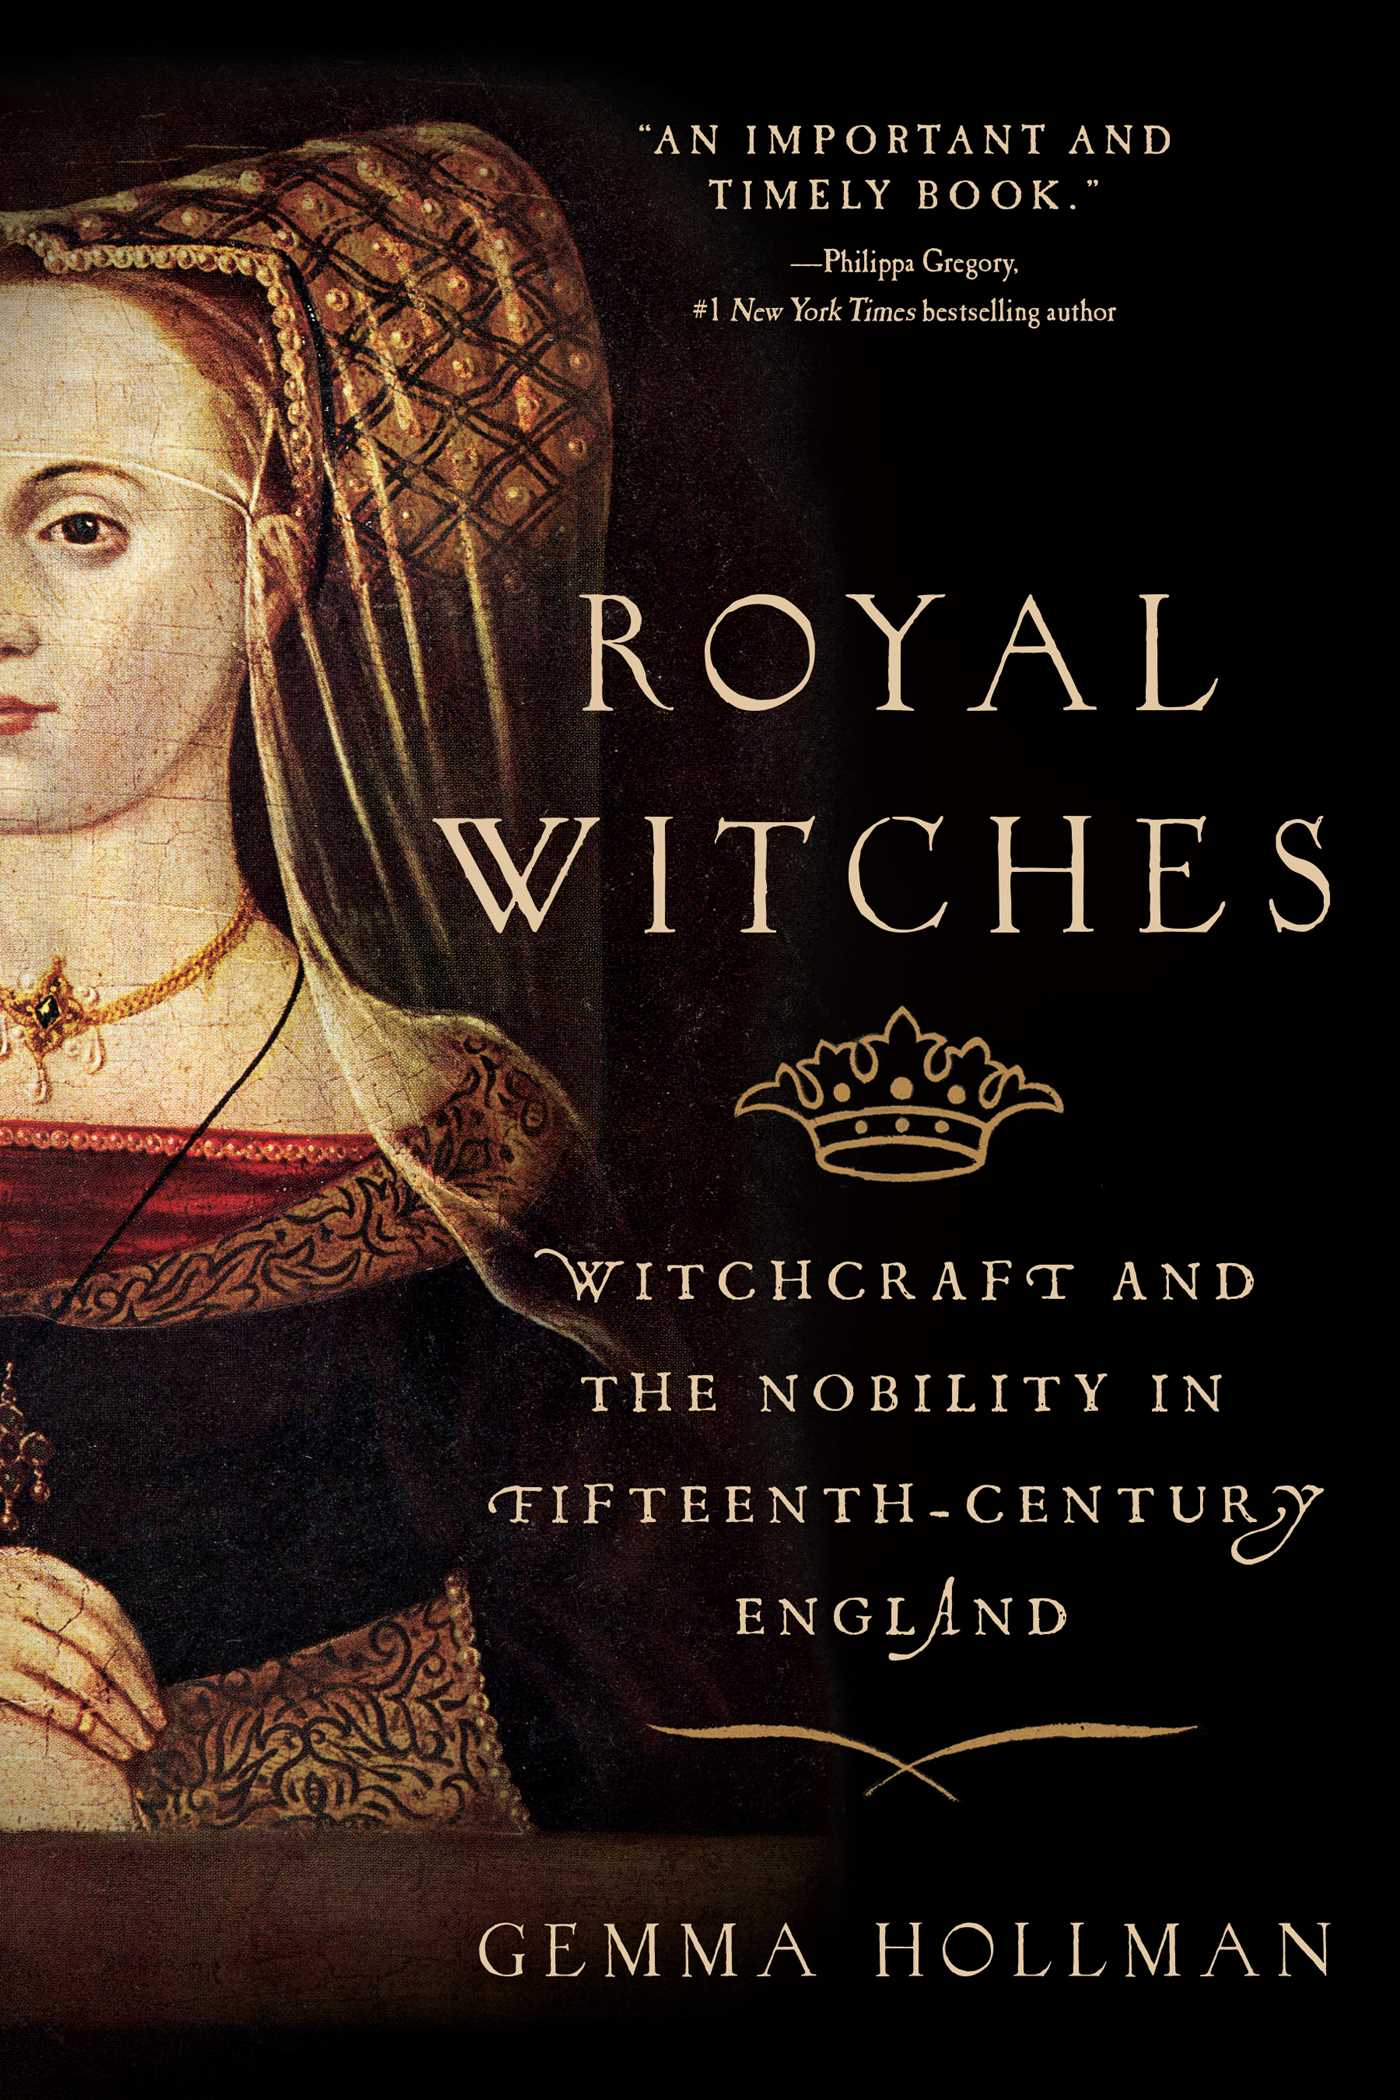 Royal Witches Witchcraft and the Nobility in FifteenthCentury EnglandbyGemma Hollman